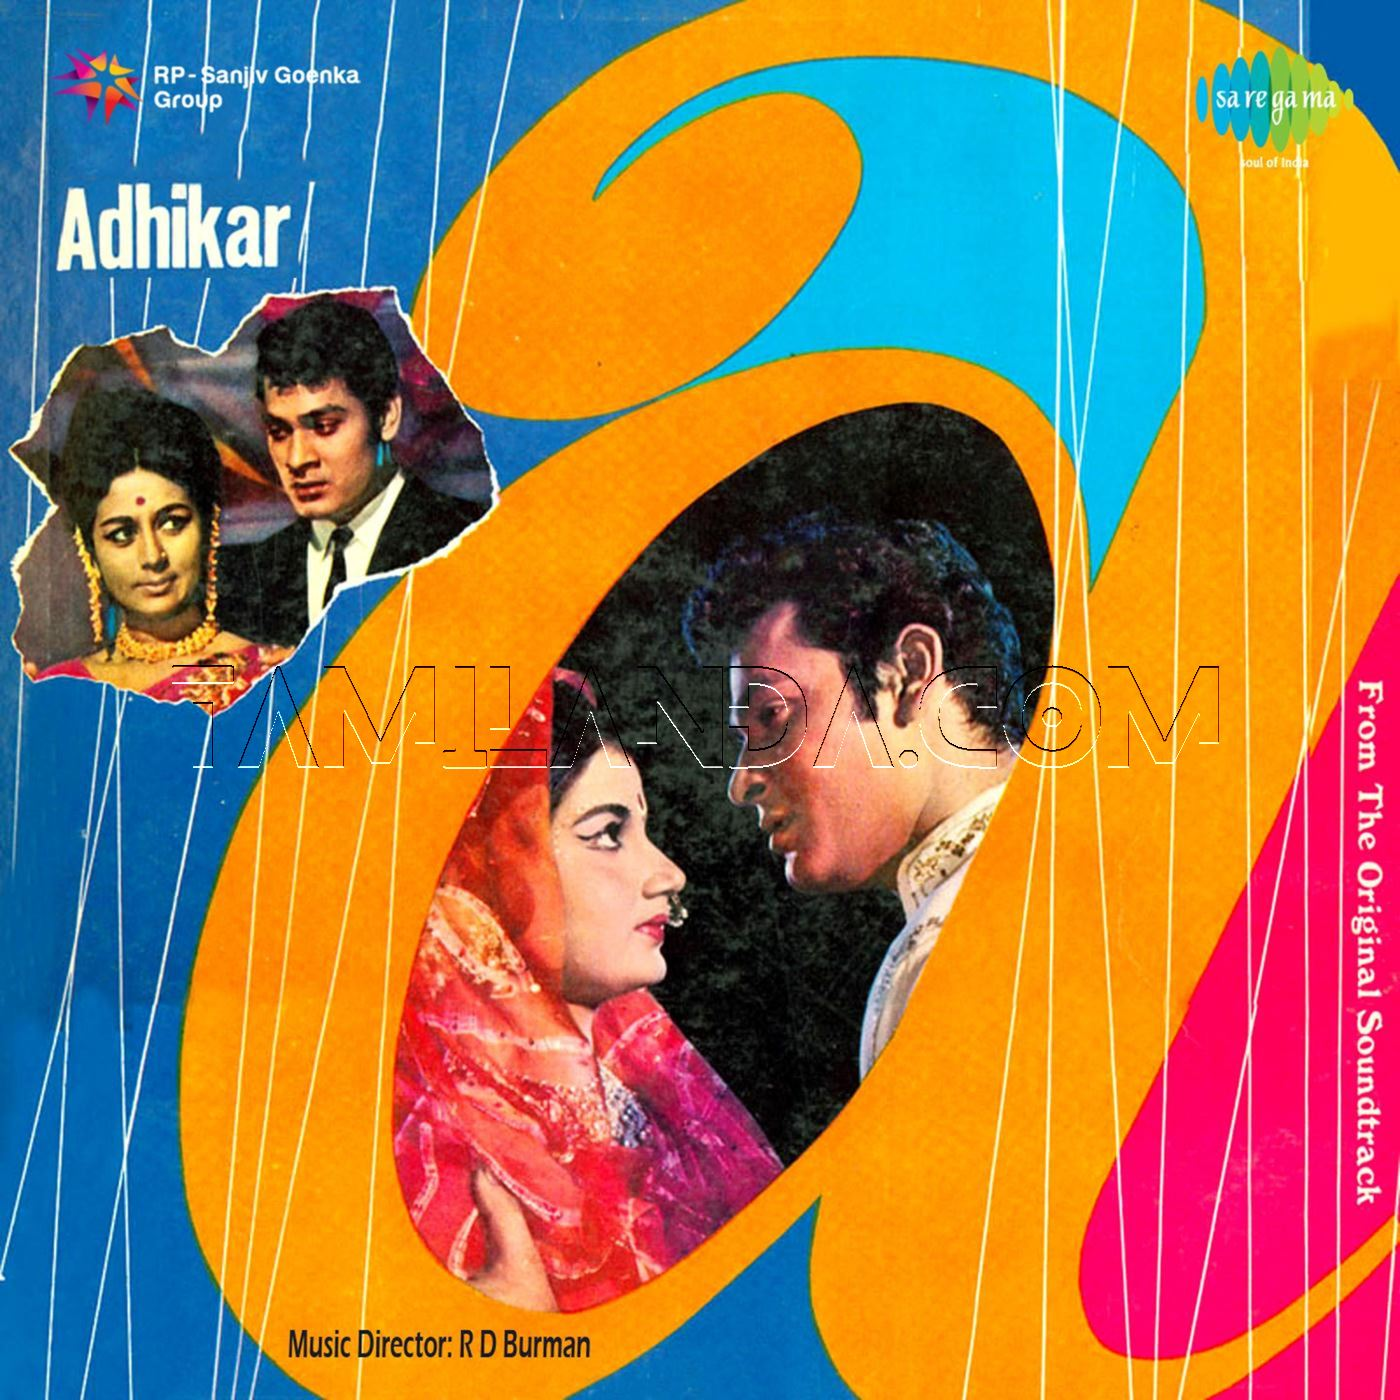 Adhikar FLAC/WAV Songs